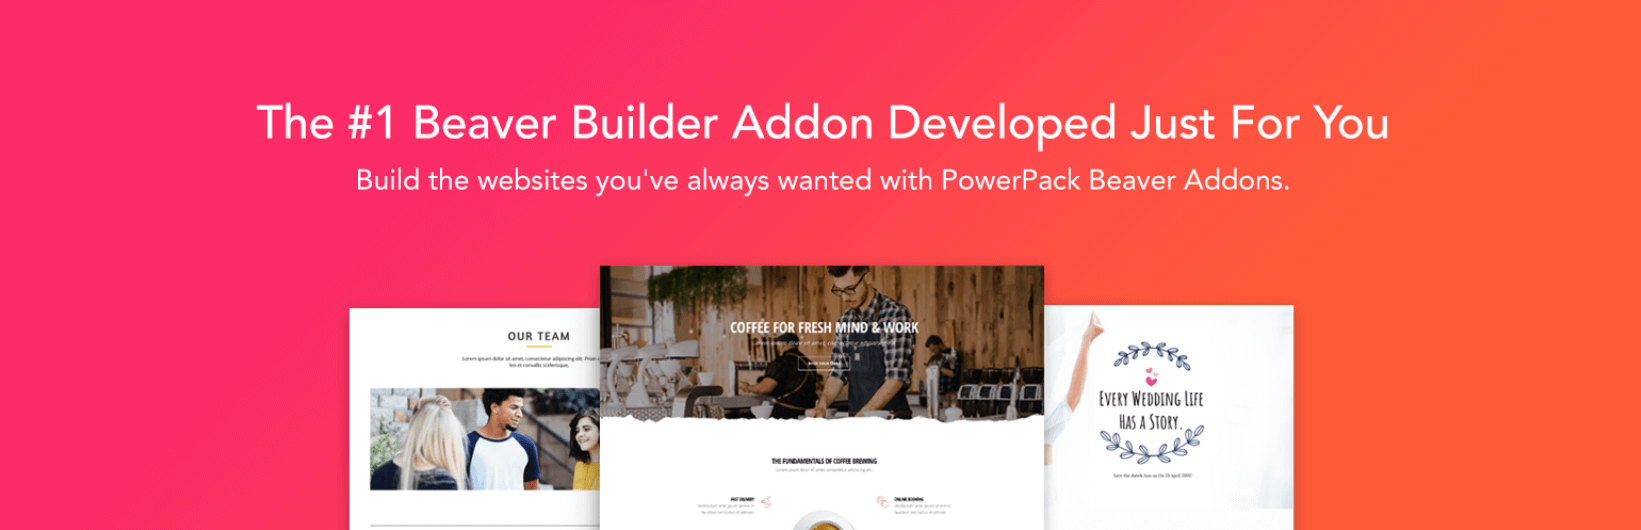 The banner for the PowerPack Beaver Addon plugin.